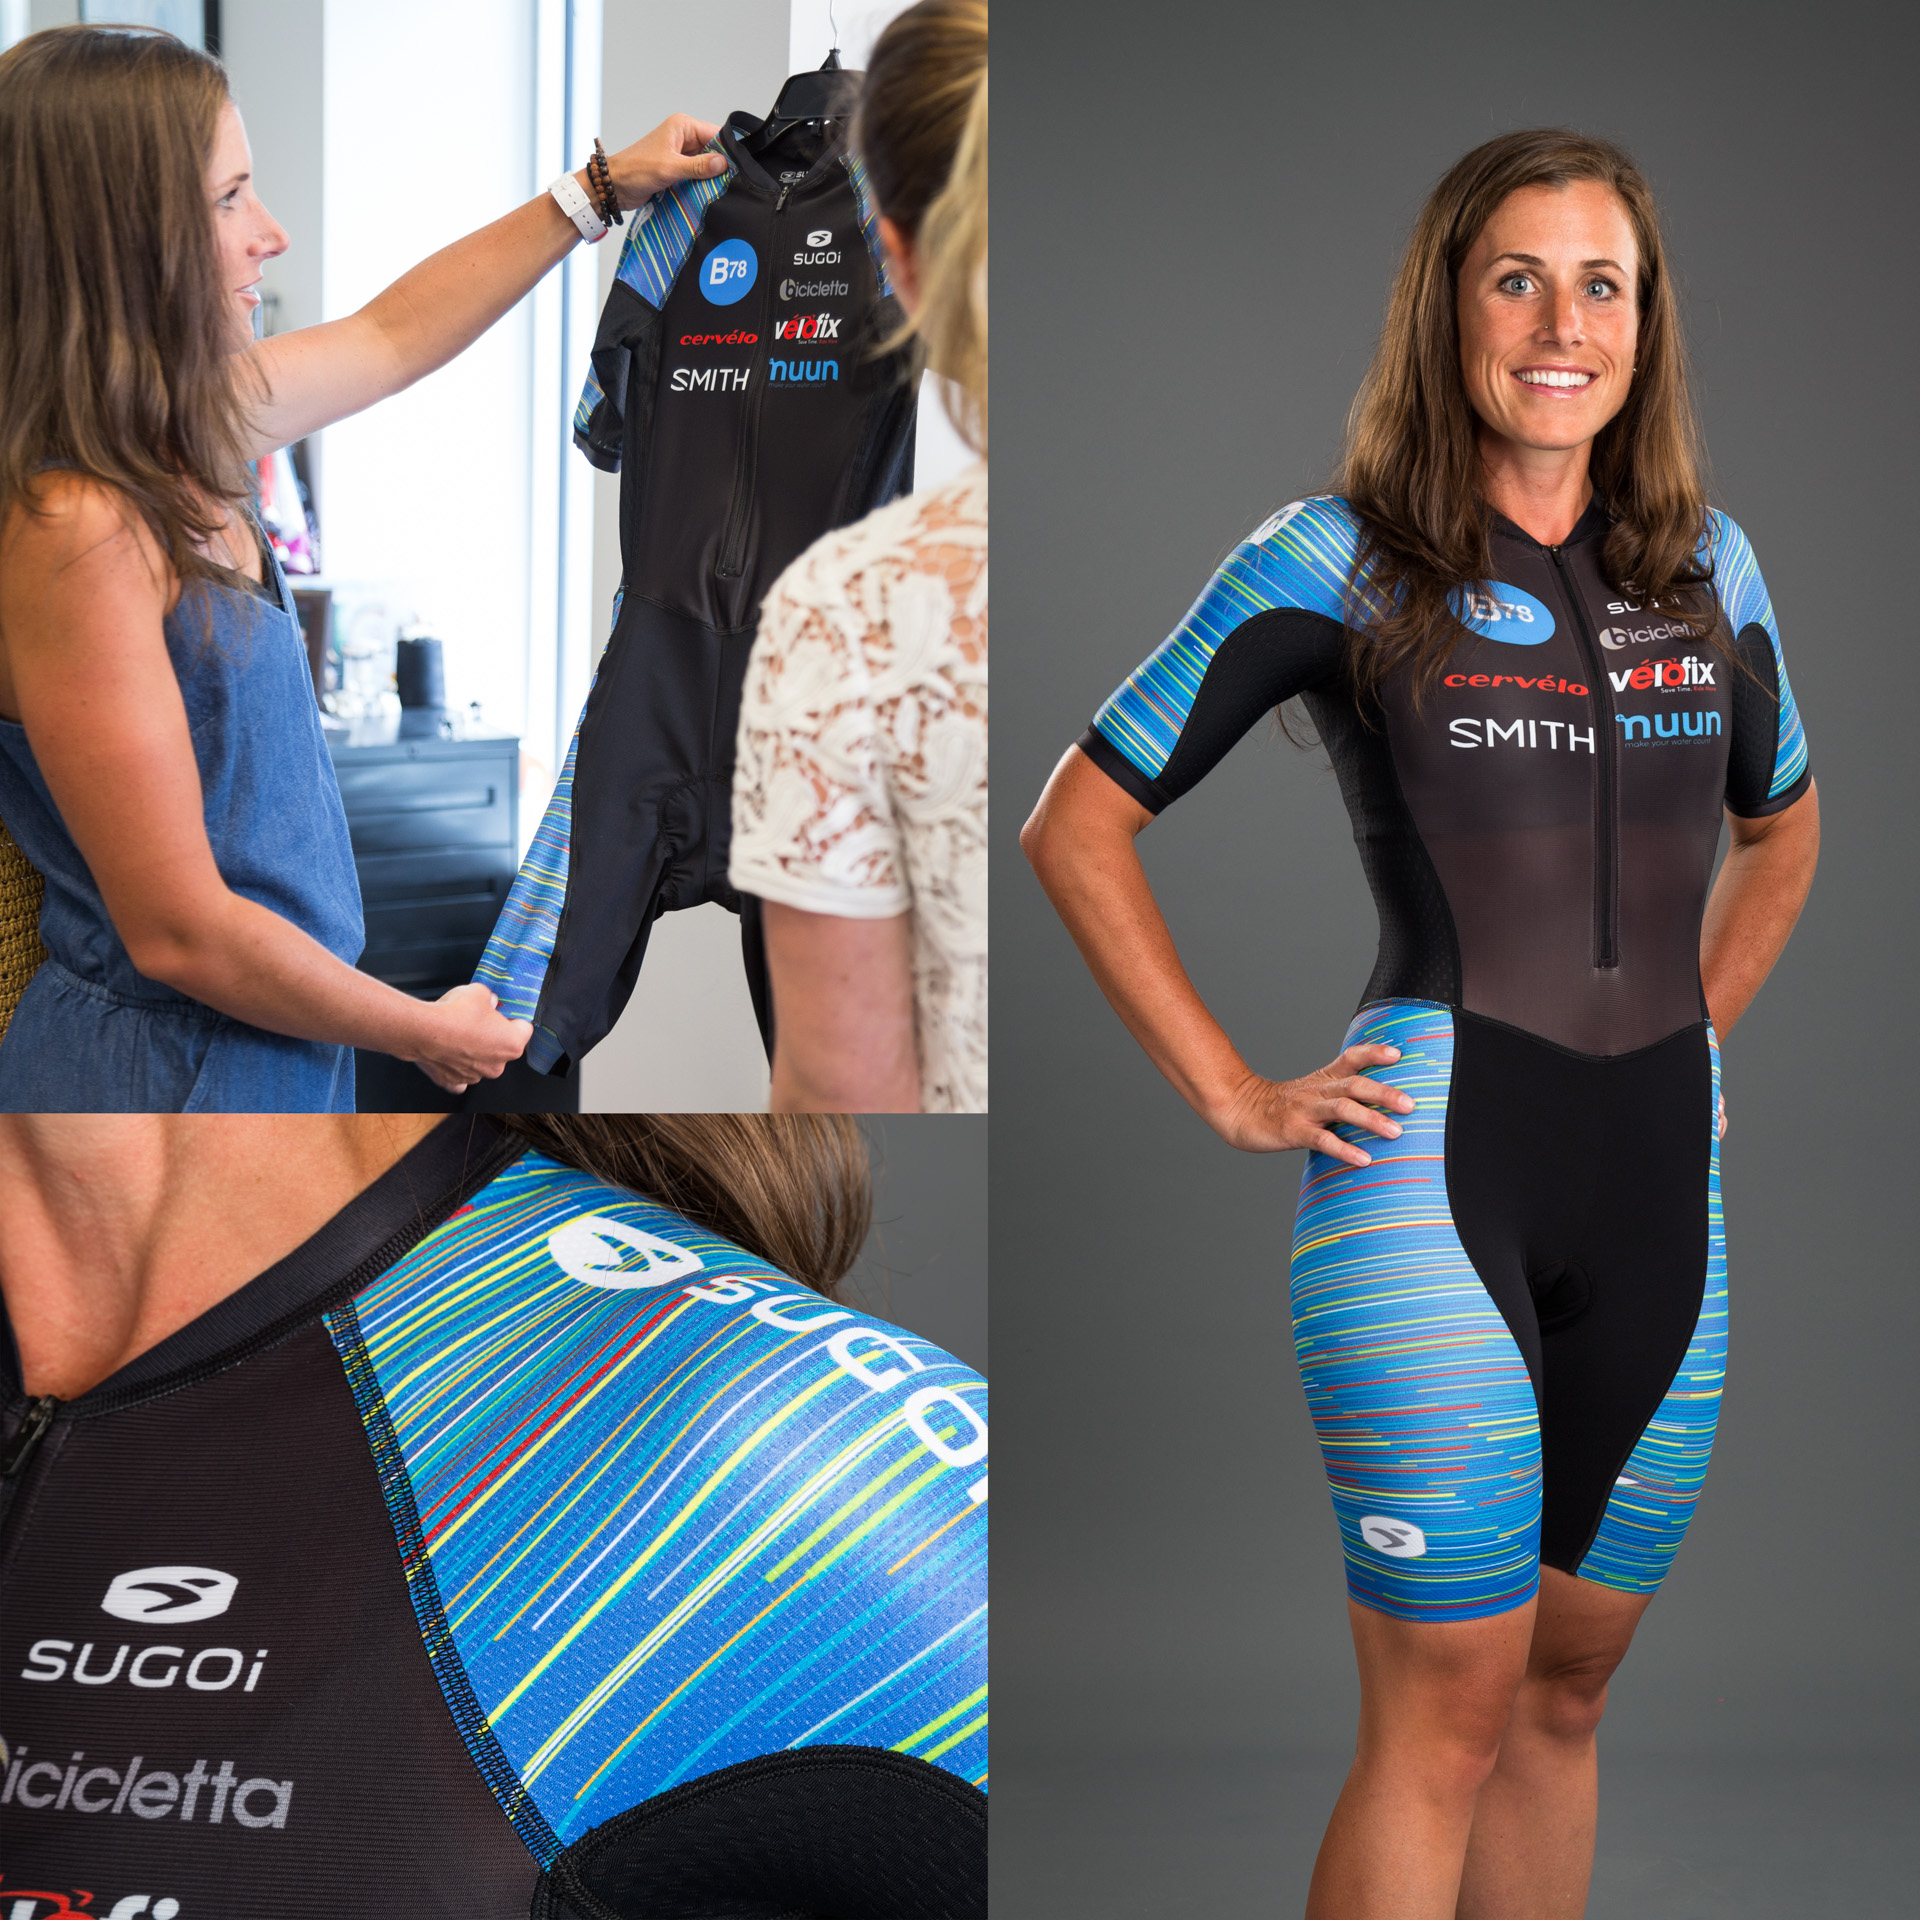 Age Grouper Steph Corker is Kona Ready in her Customized RS Tri Speedsuit